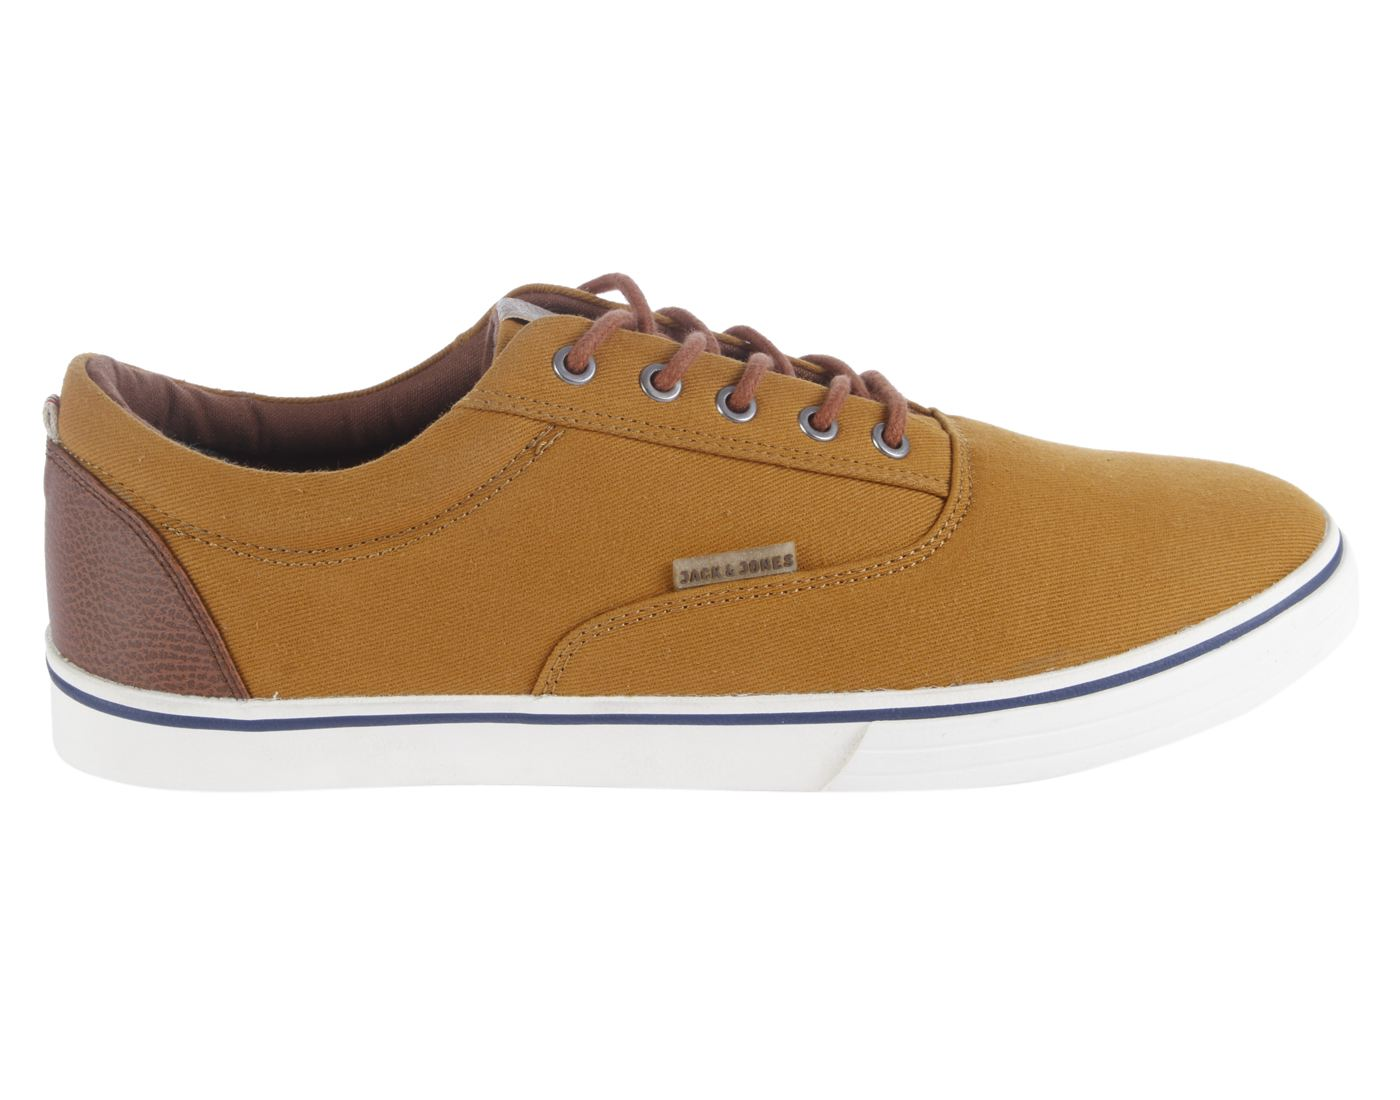 Jack & Jones Honey Mustard Leather  (Rubber Sole) Lace-up Sneakers